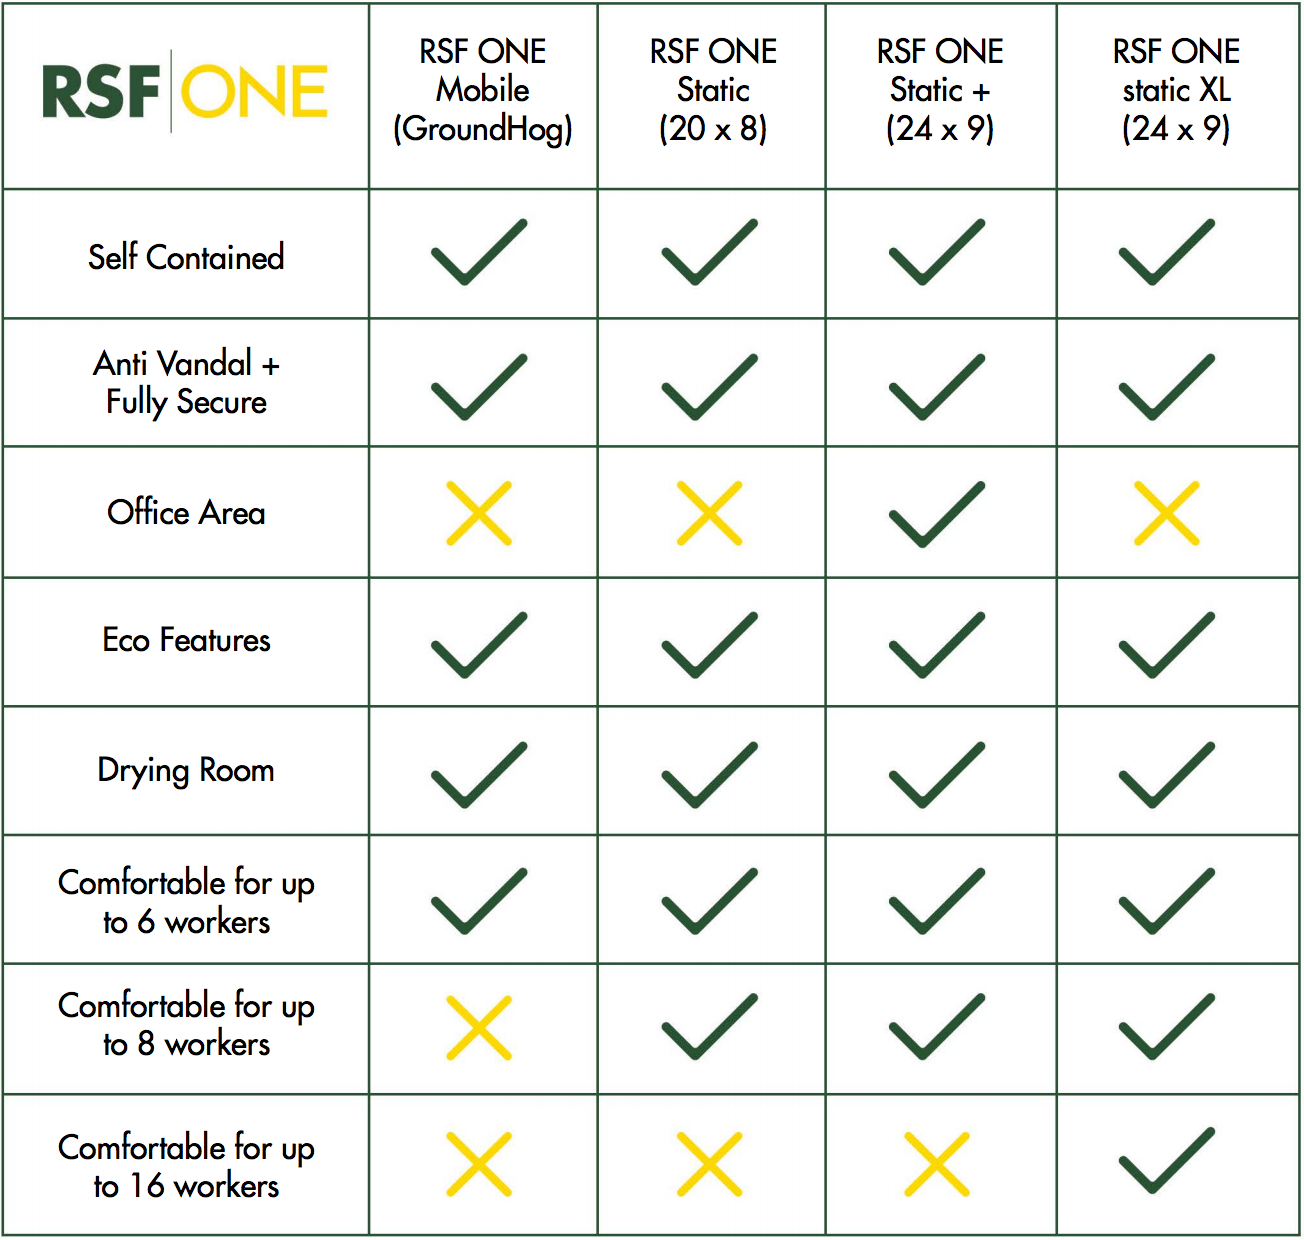 rsf one static welfare unit comparison table